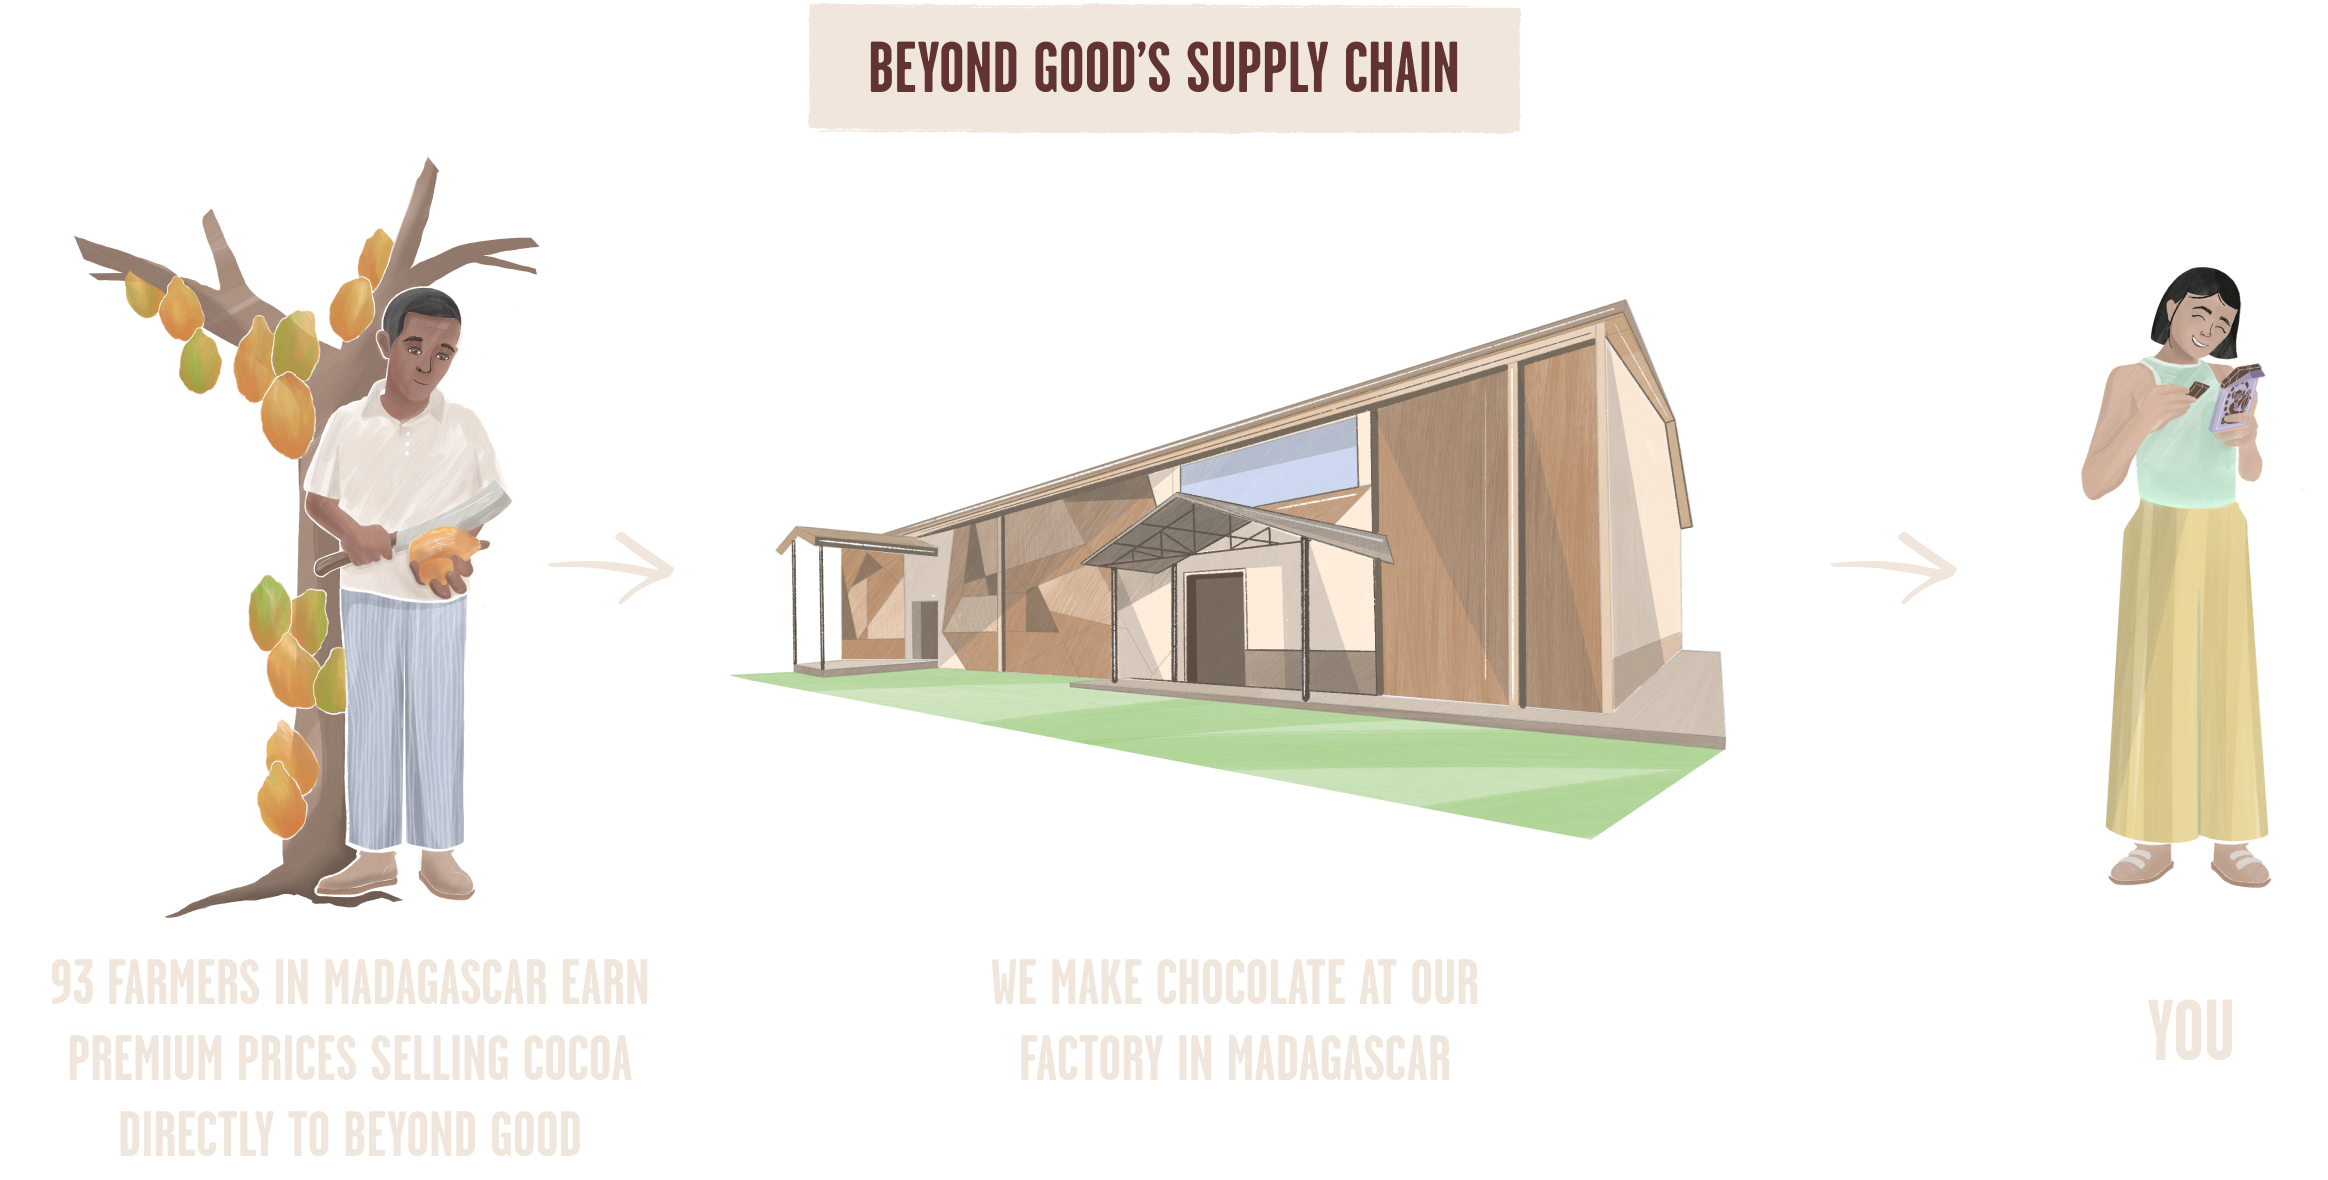 Illustrated infographic connecting the following phrases and imagery:  A single farmer splitting open a cocoa pod: 93 FARMERS IN MADAGASCAR GROW PREMIUM COCOA AND EARN MORE FOR IT  A colorful factory: WE BUY COCOA DIRECTLY FROM FARMERS TO MAKE CHOCOLATE AT OUR FACTORY IN MADAGASCAR   Satisfied consumer: YOU